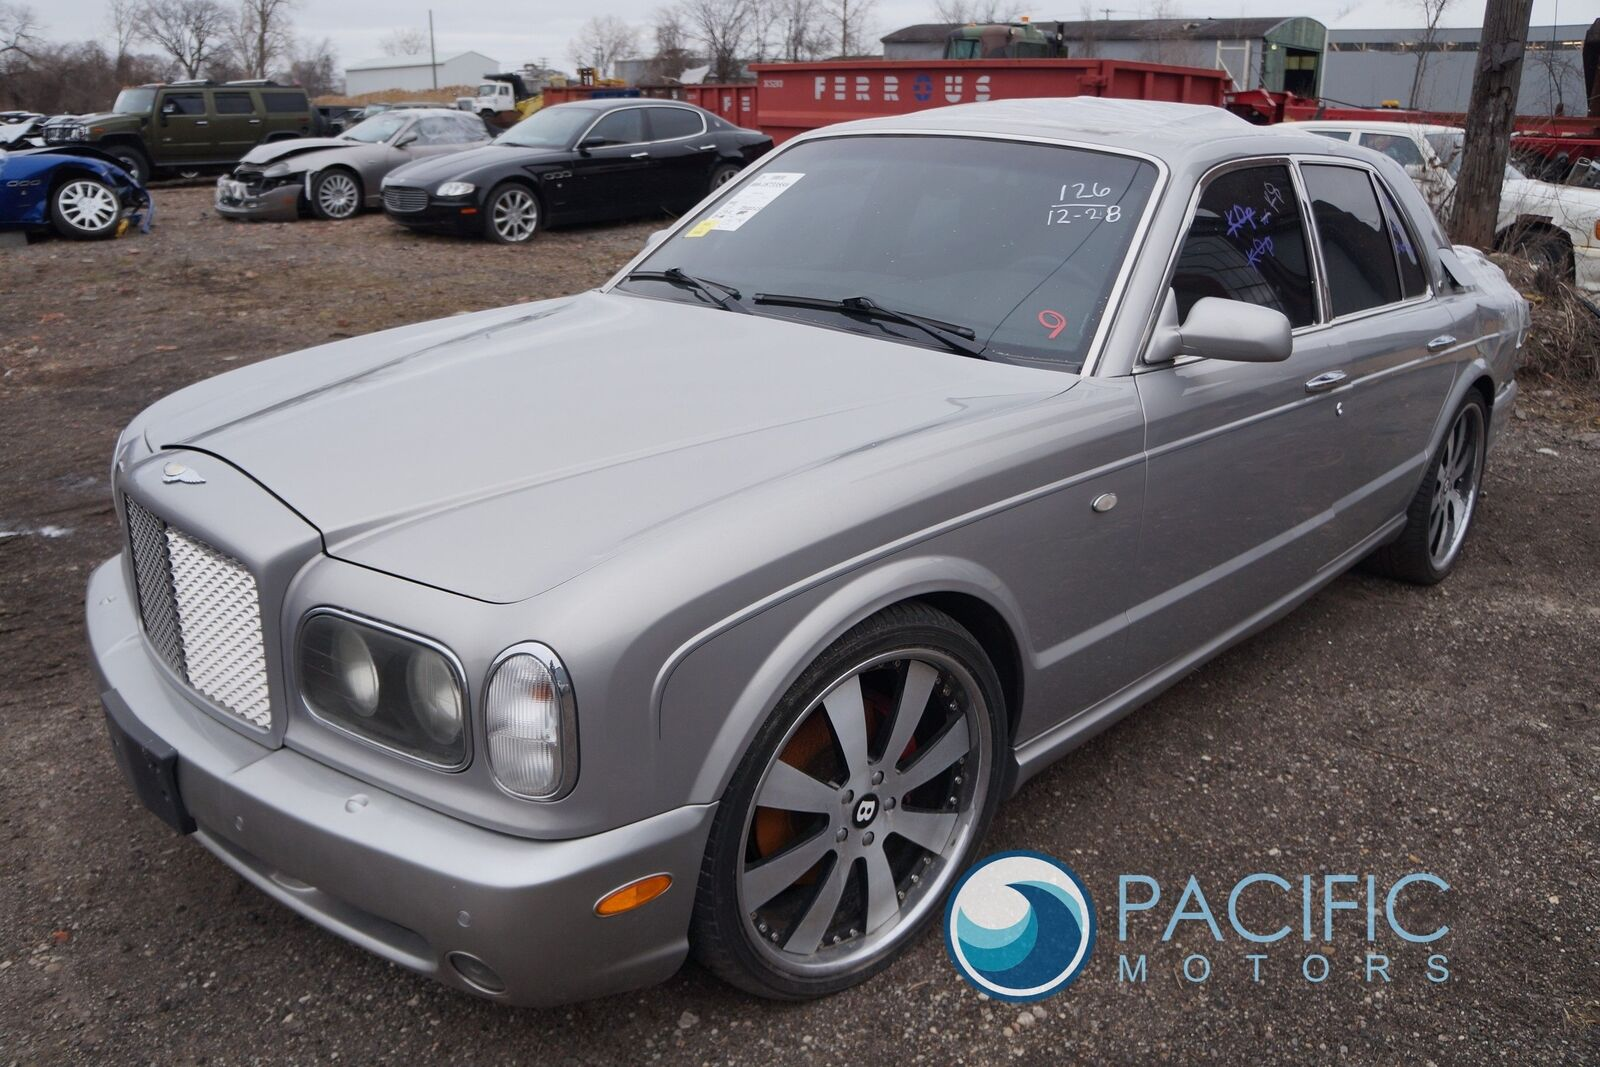 Bentley Arnage Fuse Box Location Wiring Diagram Schematics Flying Spur Left Trunk Fusebox Fuseboard Relay Panel Pm55189pa 2017